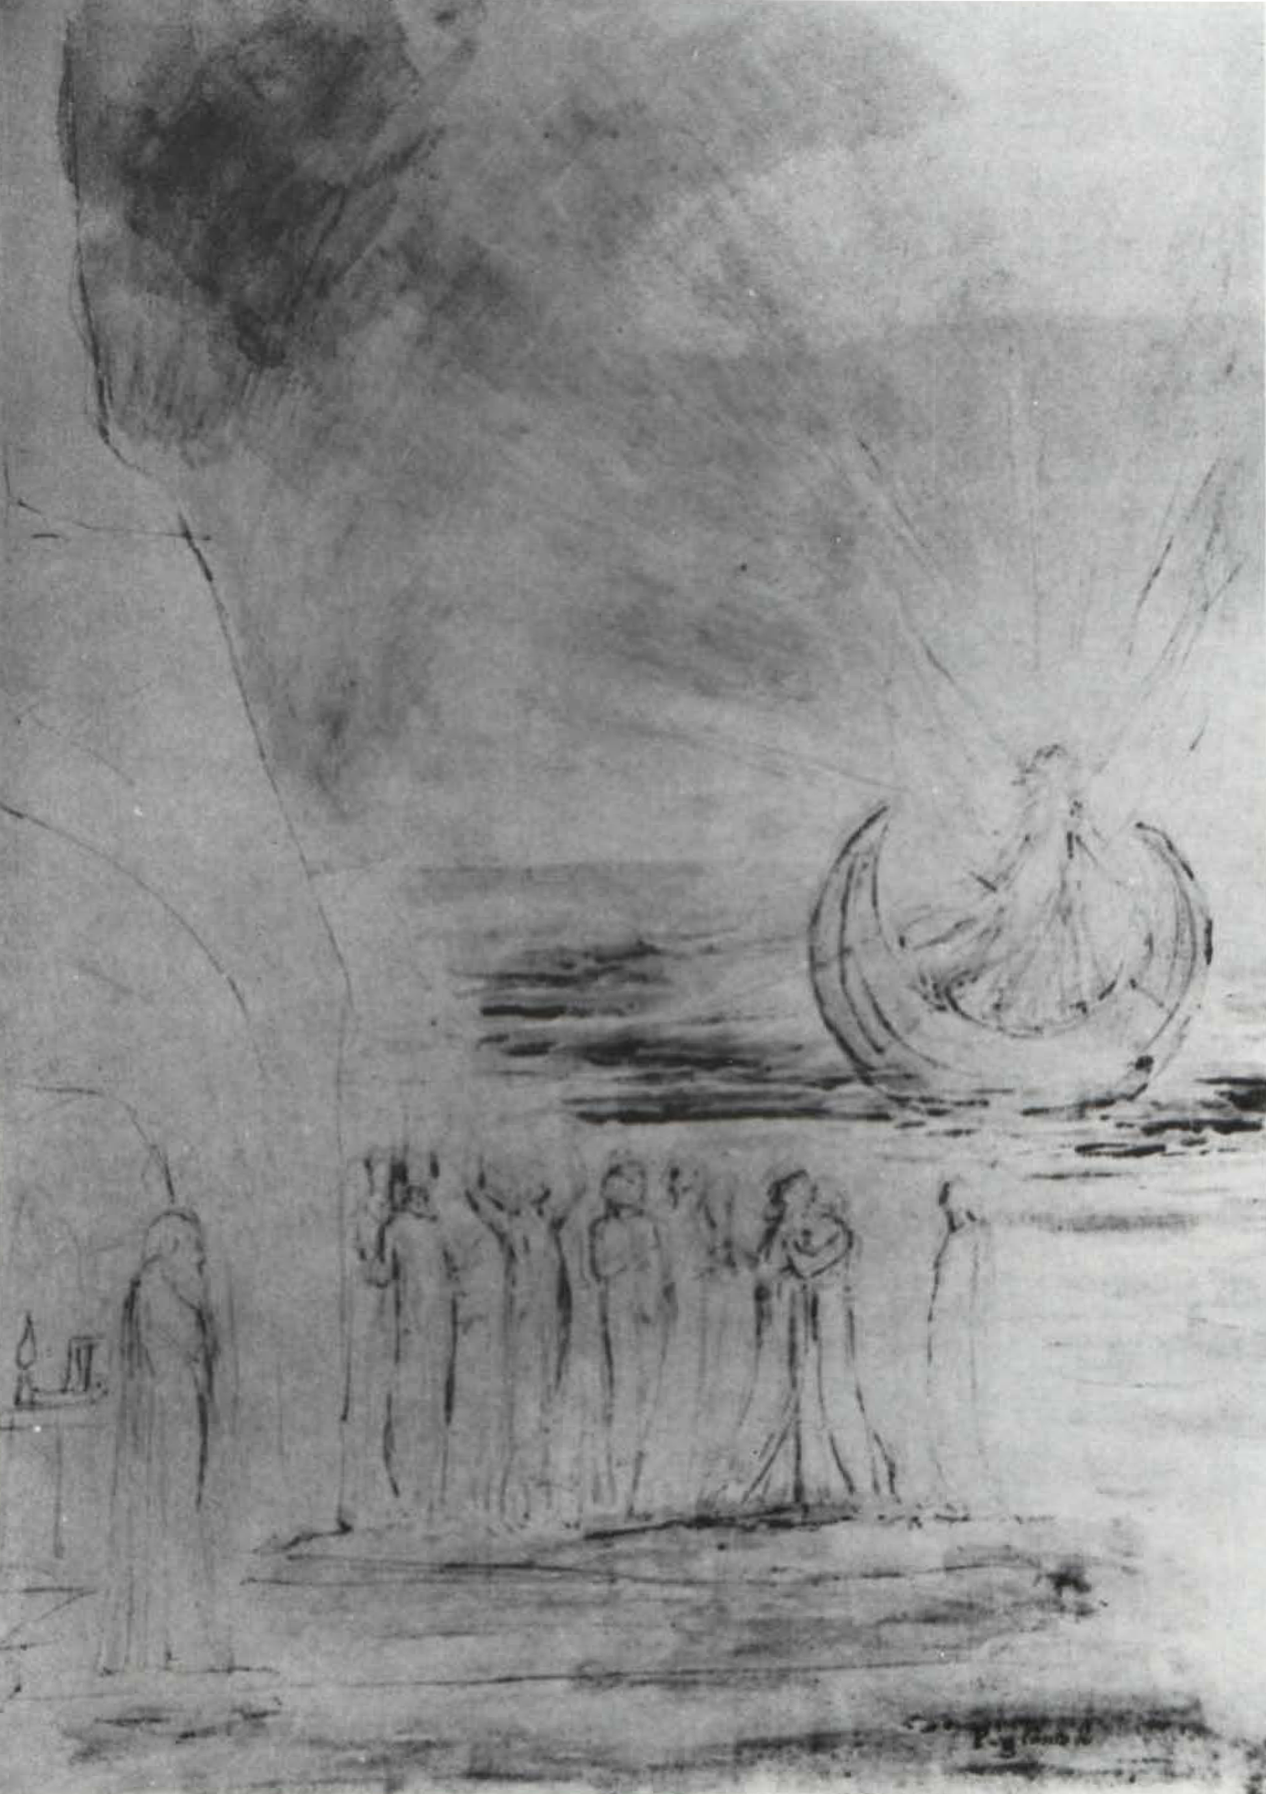 Blakes moon ark symbolism nicholas o warner blakean 1 blake the angelic boat wafting over the souls for purgation courtesy of the trustees of the british museum buycottarizona